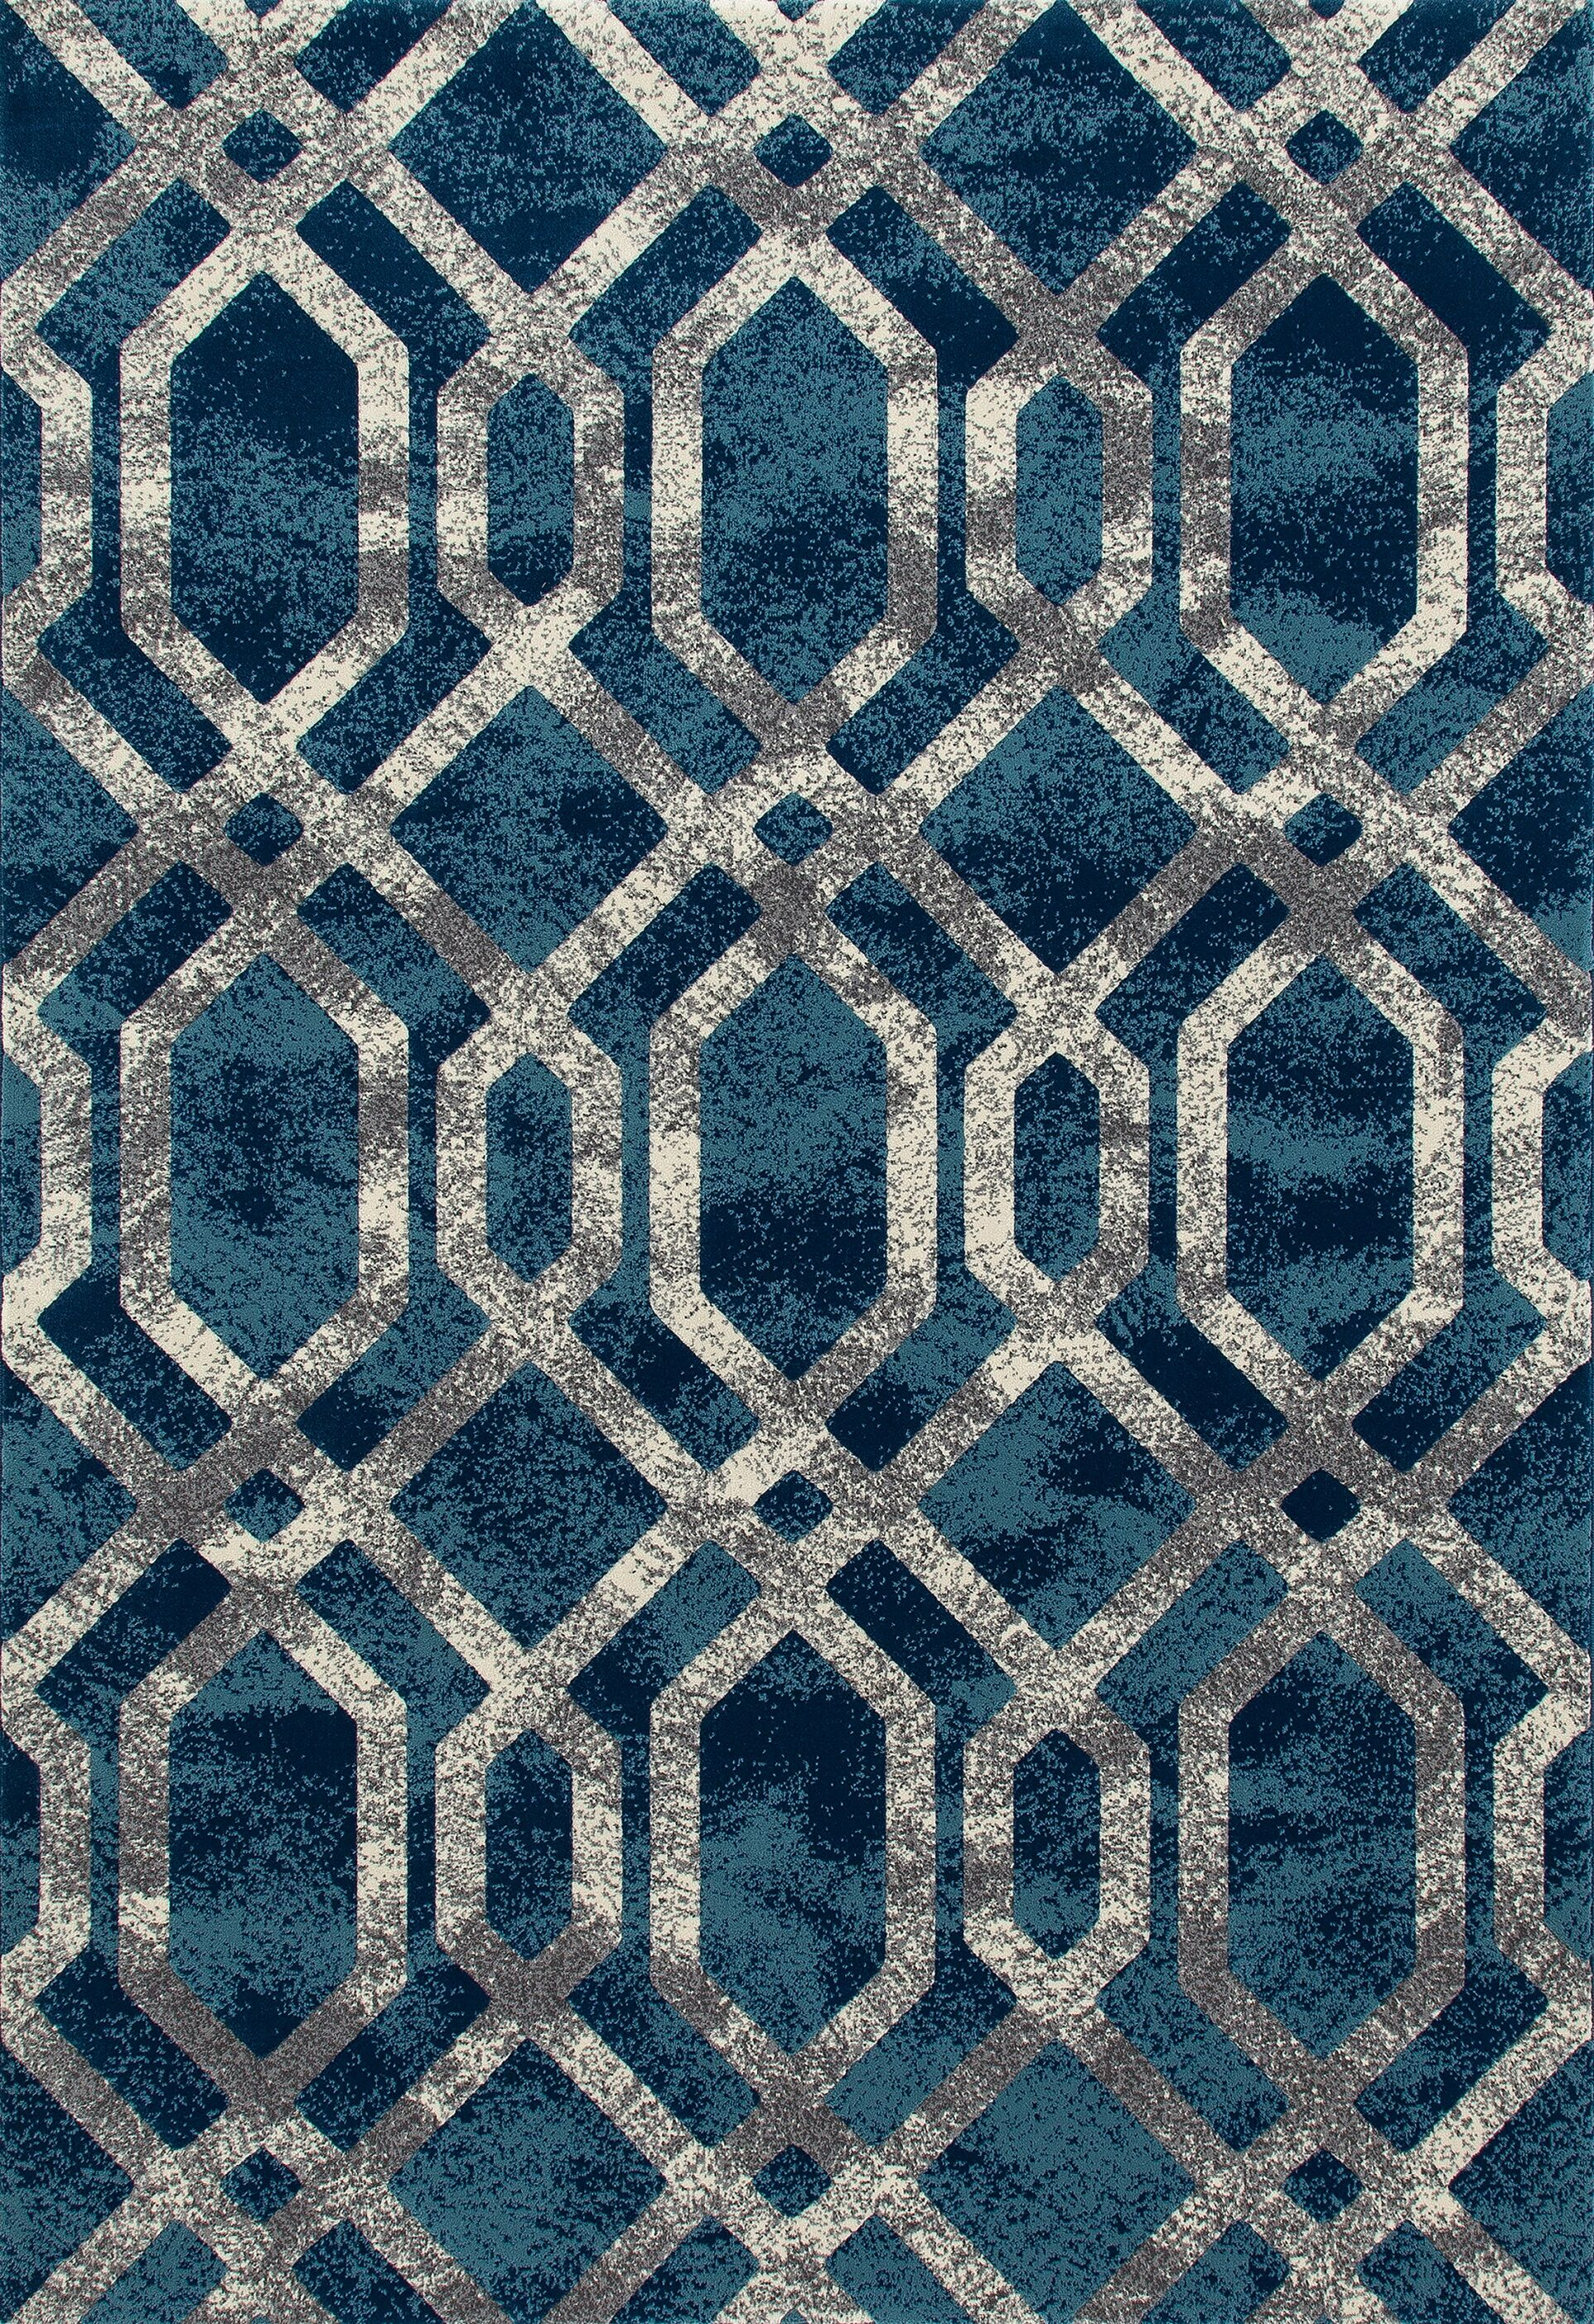 Delanie Blue And Silver Area Rug Rug Size: 6'7 x 9'6